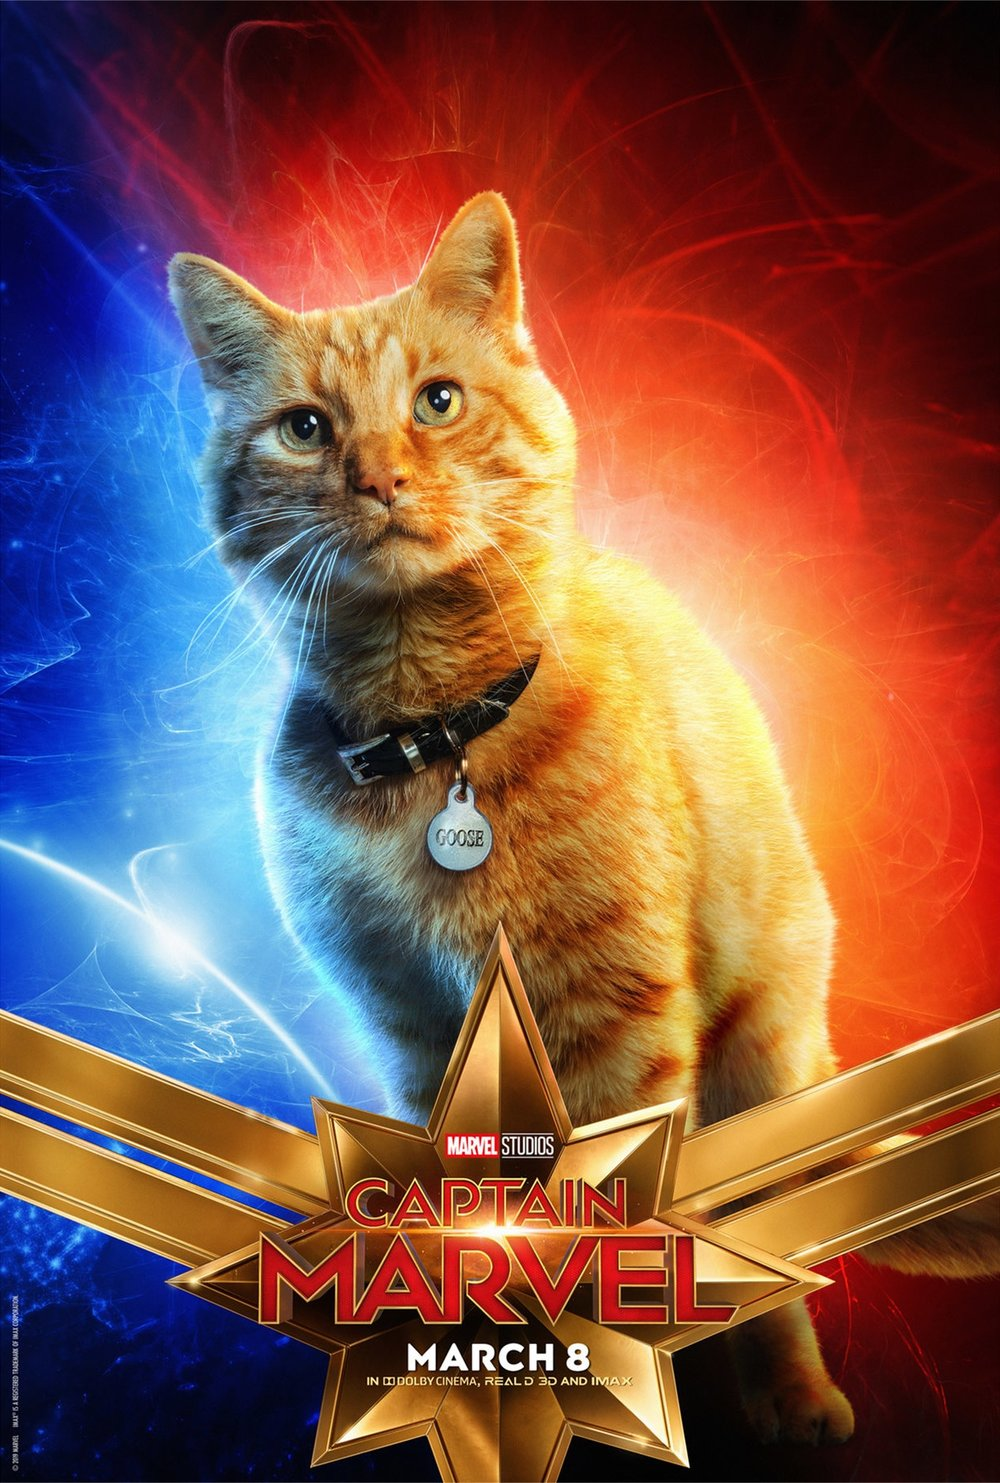 Othersode #25: What's a cat? / Captain Marvel! - The #BookSquad crash lands on planet C-53, aka Earth in the mid-90s, to talk about Captain Marvel, the newest origin story movie in the Marvel Cinematic Universe. We discuss where this movie fits in the MCU, how it works as trauma narrative, the film's feminist themes, how it compares to other superhero origin stories, and — of course — Goose the cat! Plus, we give you a rundown of what's on the #BookSquadBlog (it's a lot of recaps!) and what's up next on the pod. Read along with us for our next #bookpisode on Fruit of the Drunken Tree by Ingrid Rojas Contreras. Our next #othersode will be on the remake of Pet Sematary, coming to theaters soon! Don't forget to rate, review and subscribe to the podcast, and send any listener feedback to us at thesquad@booksquadgoals.com. We want to hear from you!